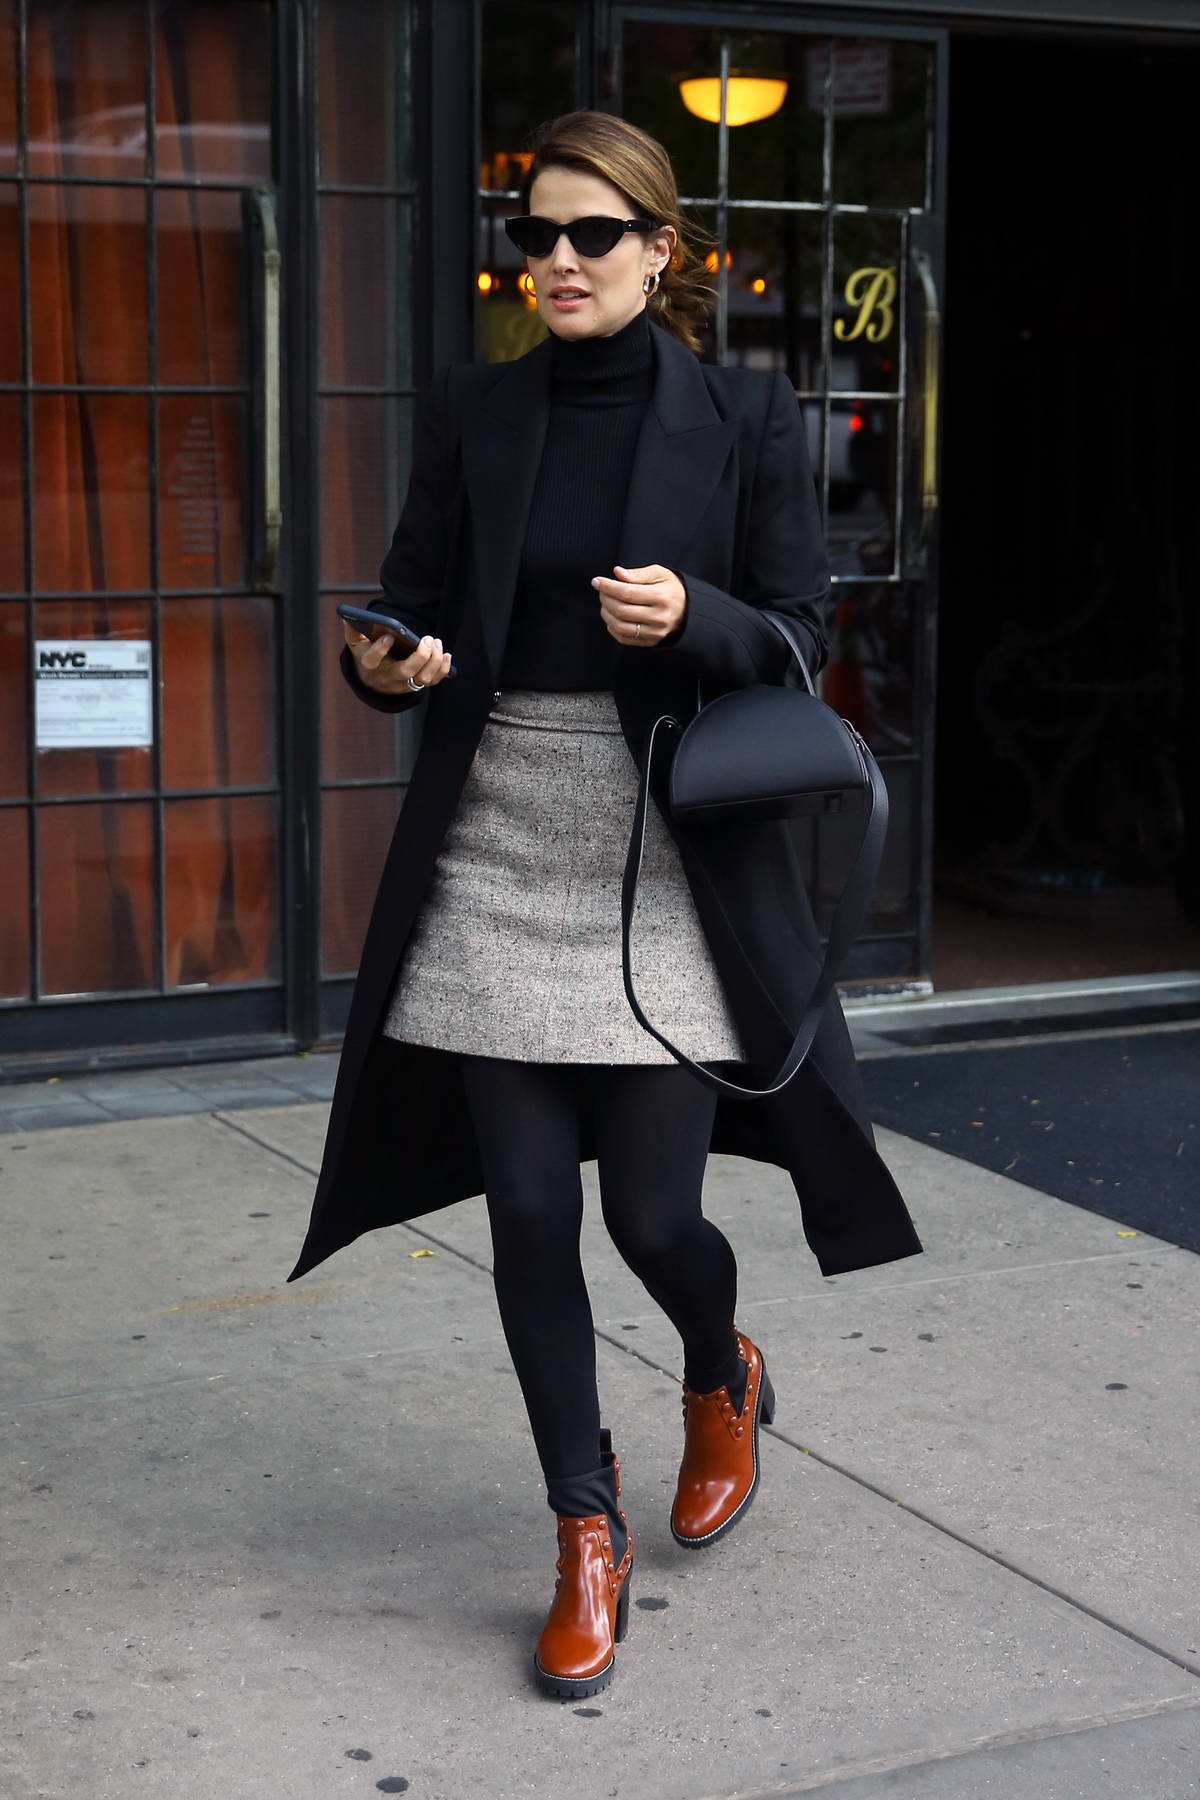 Cobie Smulders shows off her fall winter style as she leaves The Bowery Hotel in New York City